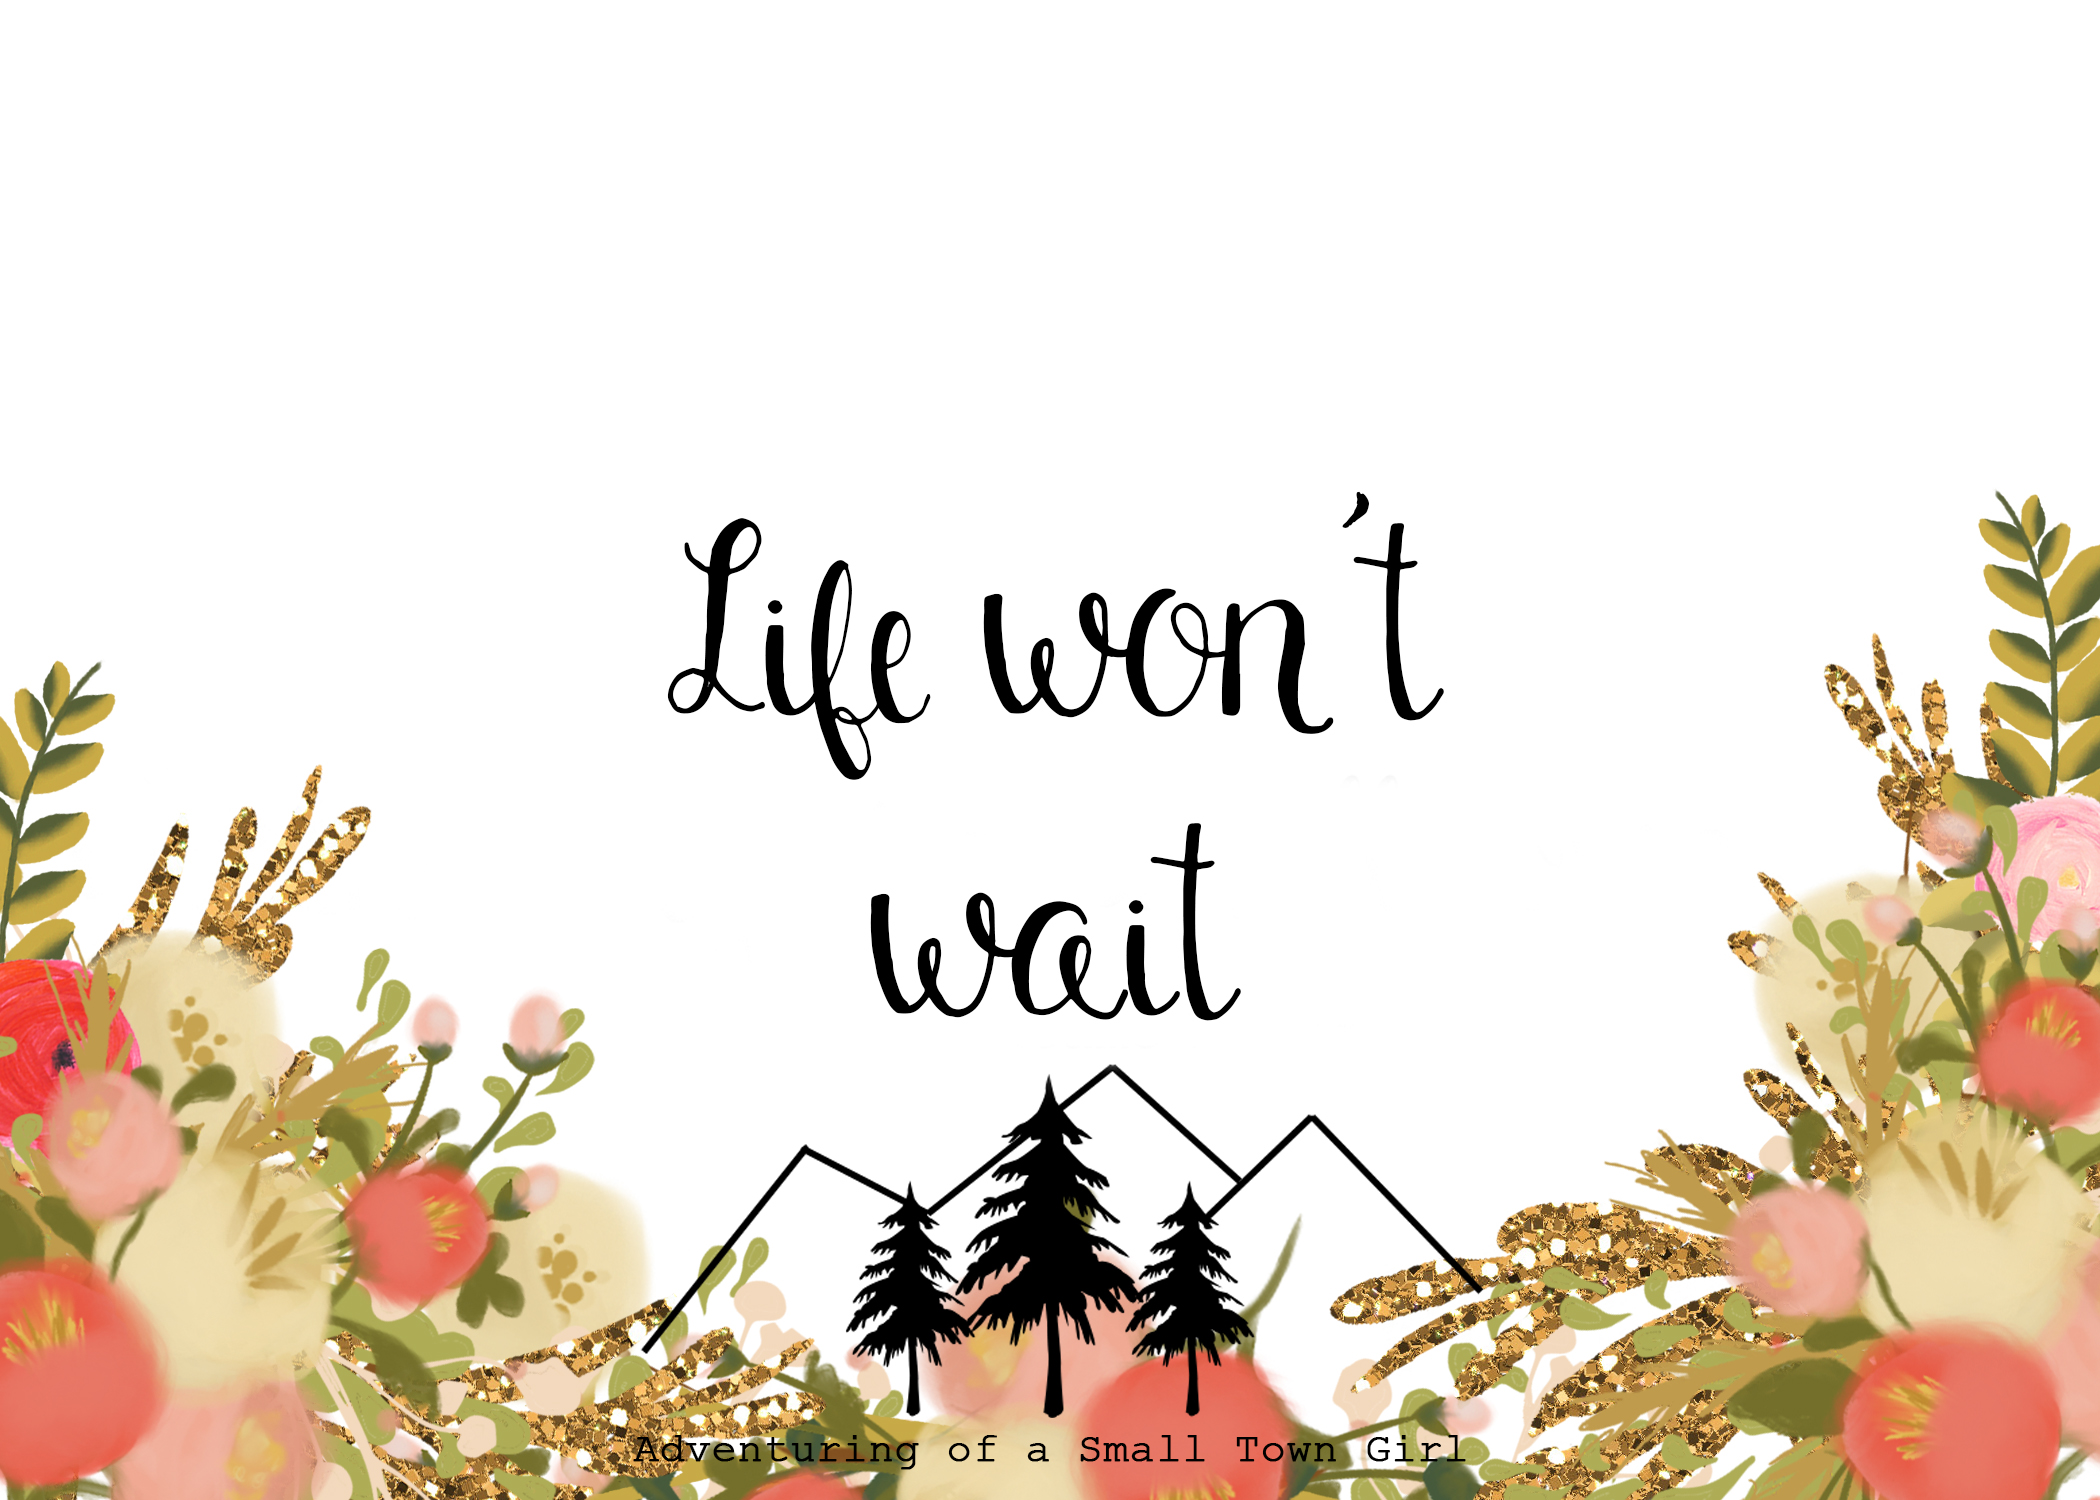 Life Won't Wait - Adventuring of a Small Town Girl